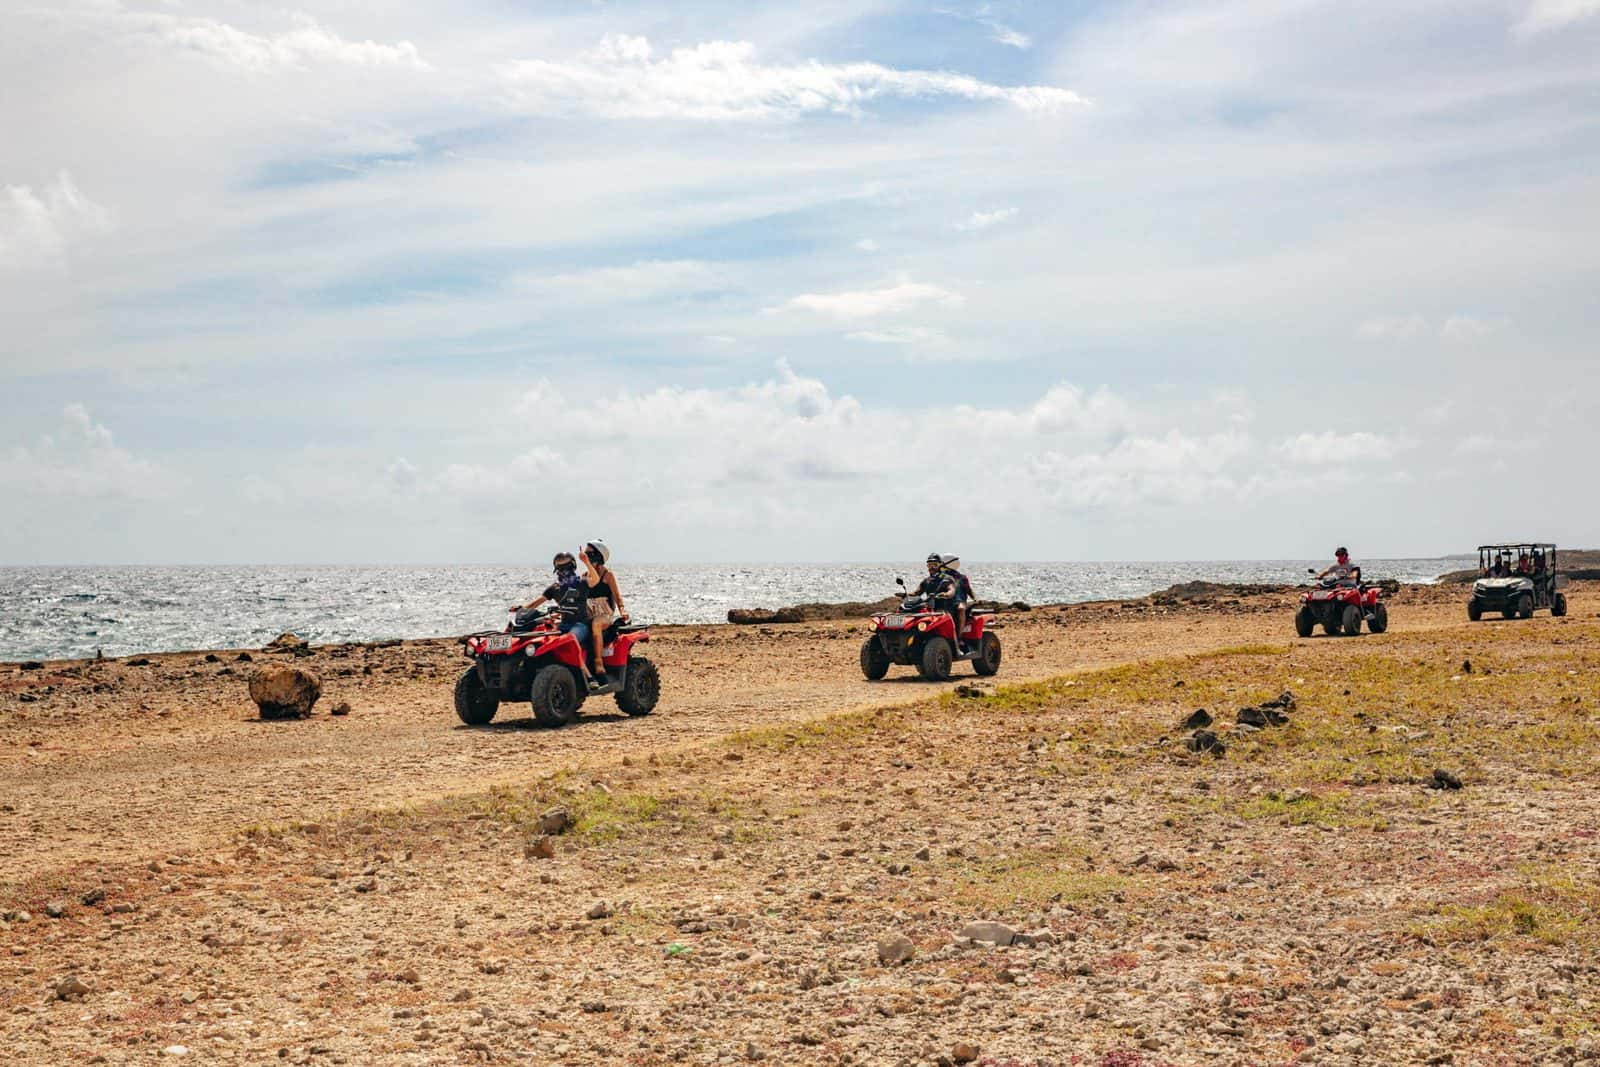 A ride with Eric's ATV Adventures